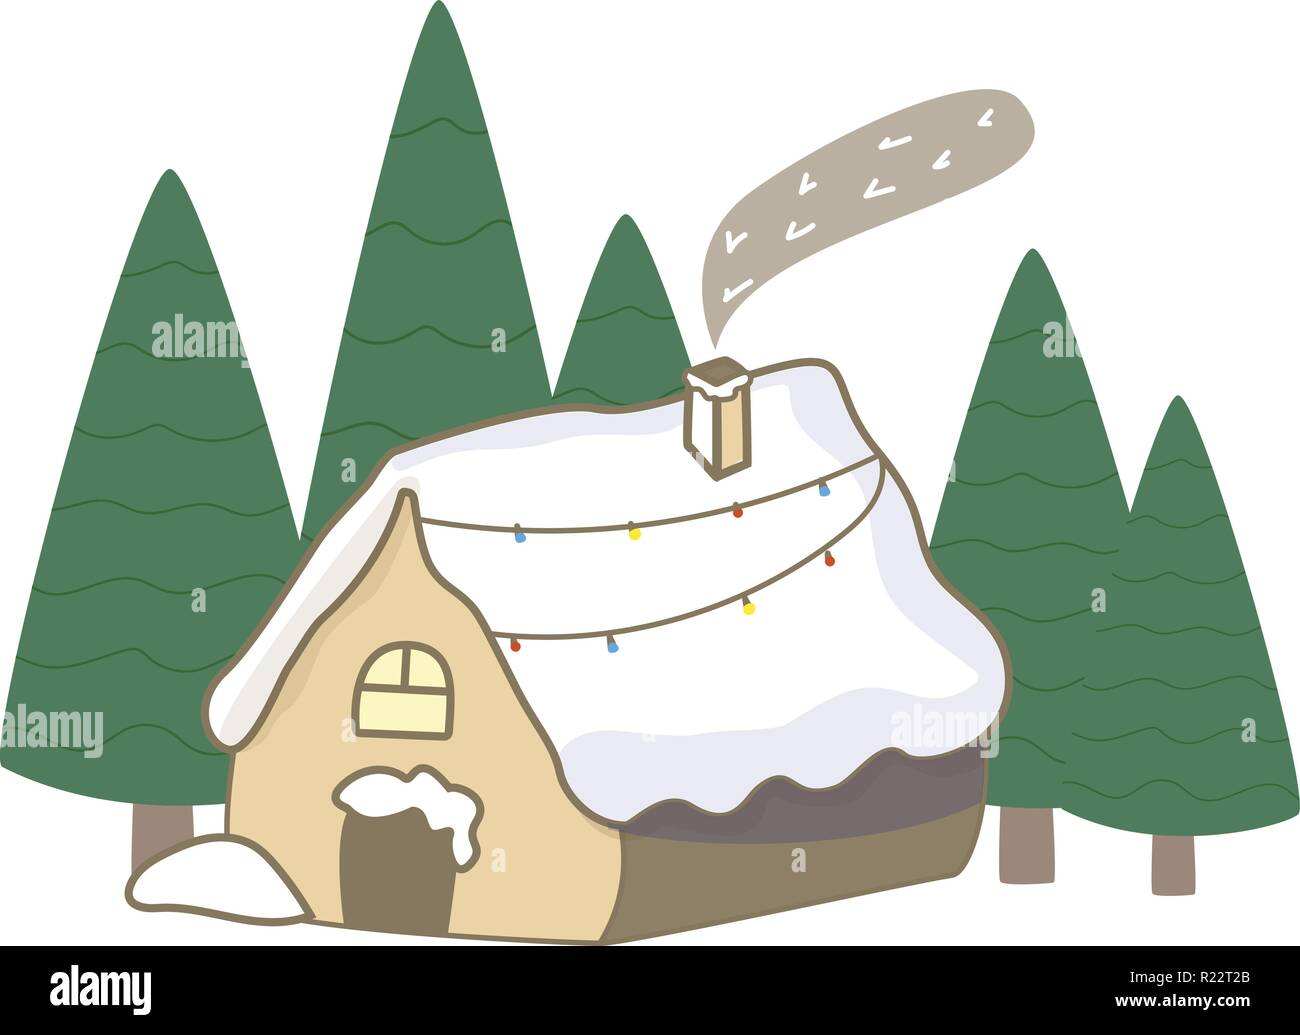 Small wood house in forest spruce. Winter. Christmas and New Year Flat Icon On White Background - Stock Vector